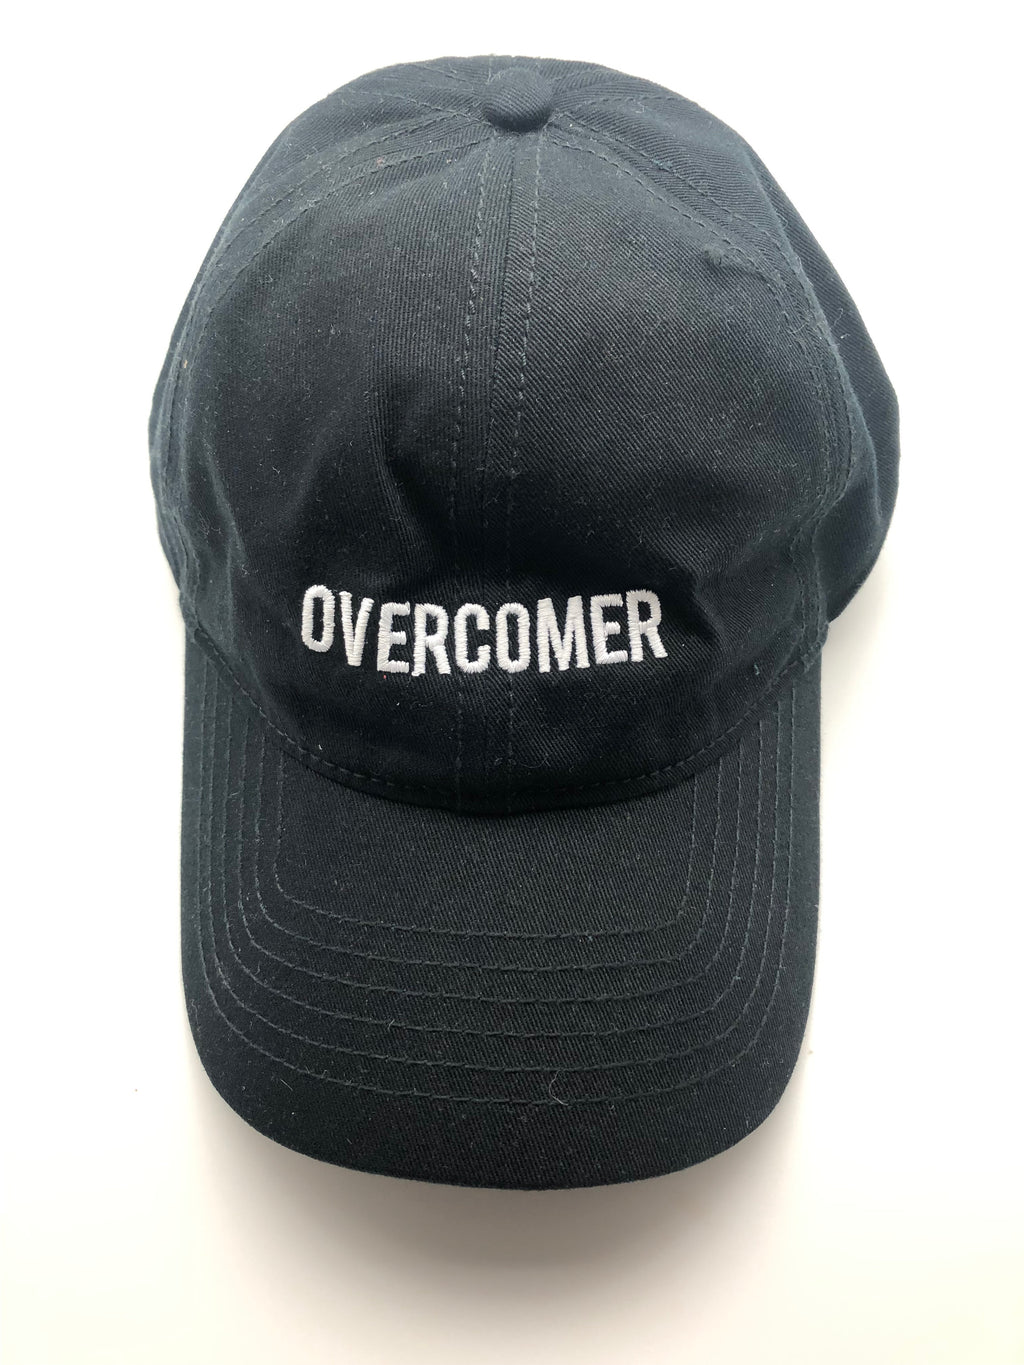 OVERCOMER Baseball Hat - Black